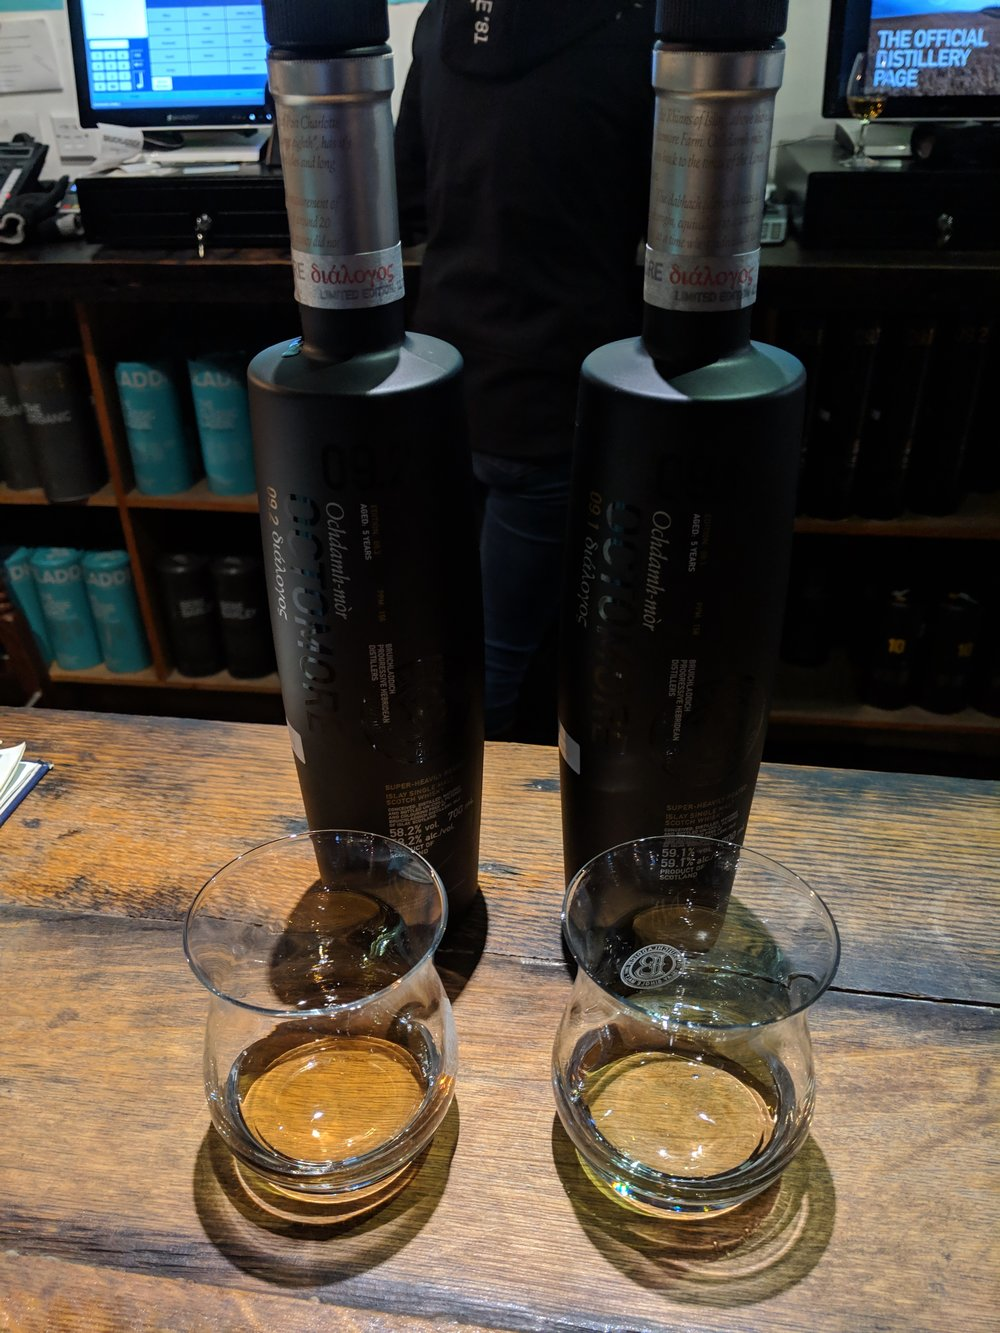 Octomore tastings at Bruichladdich